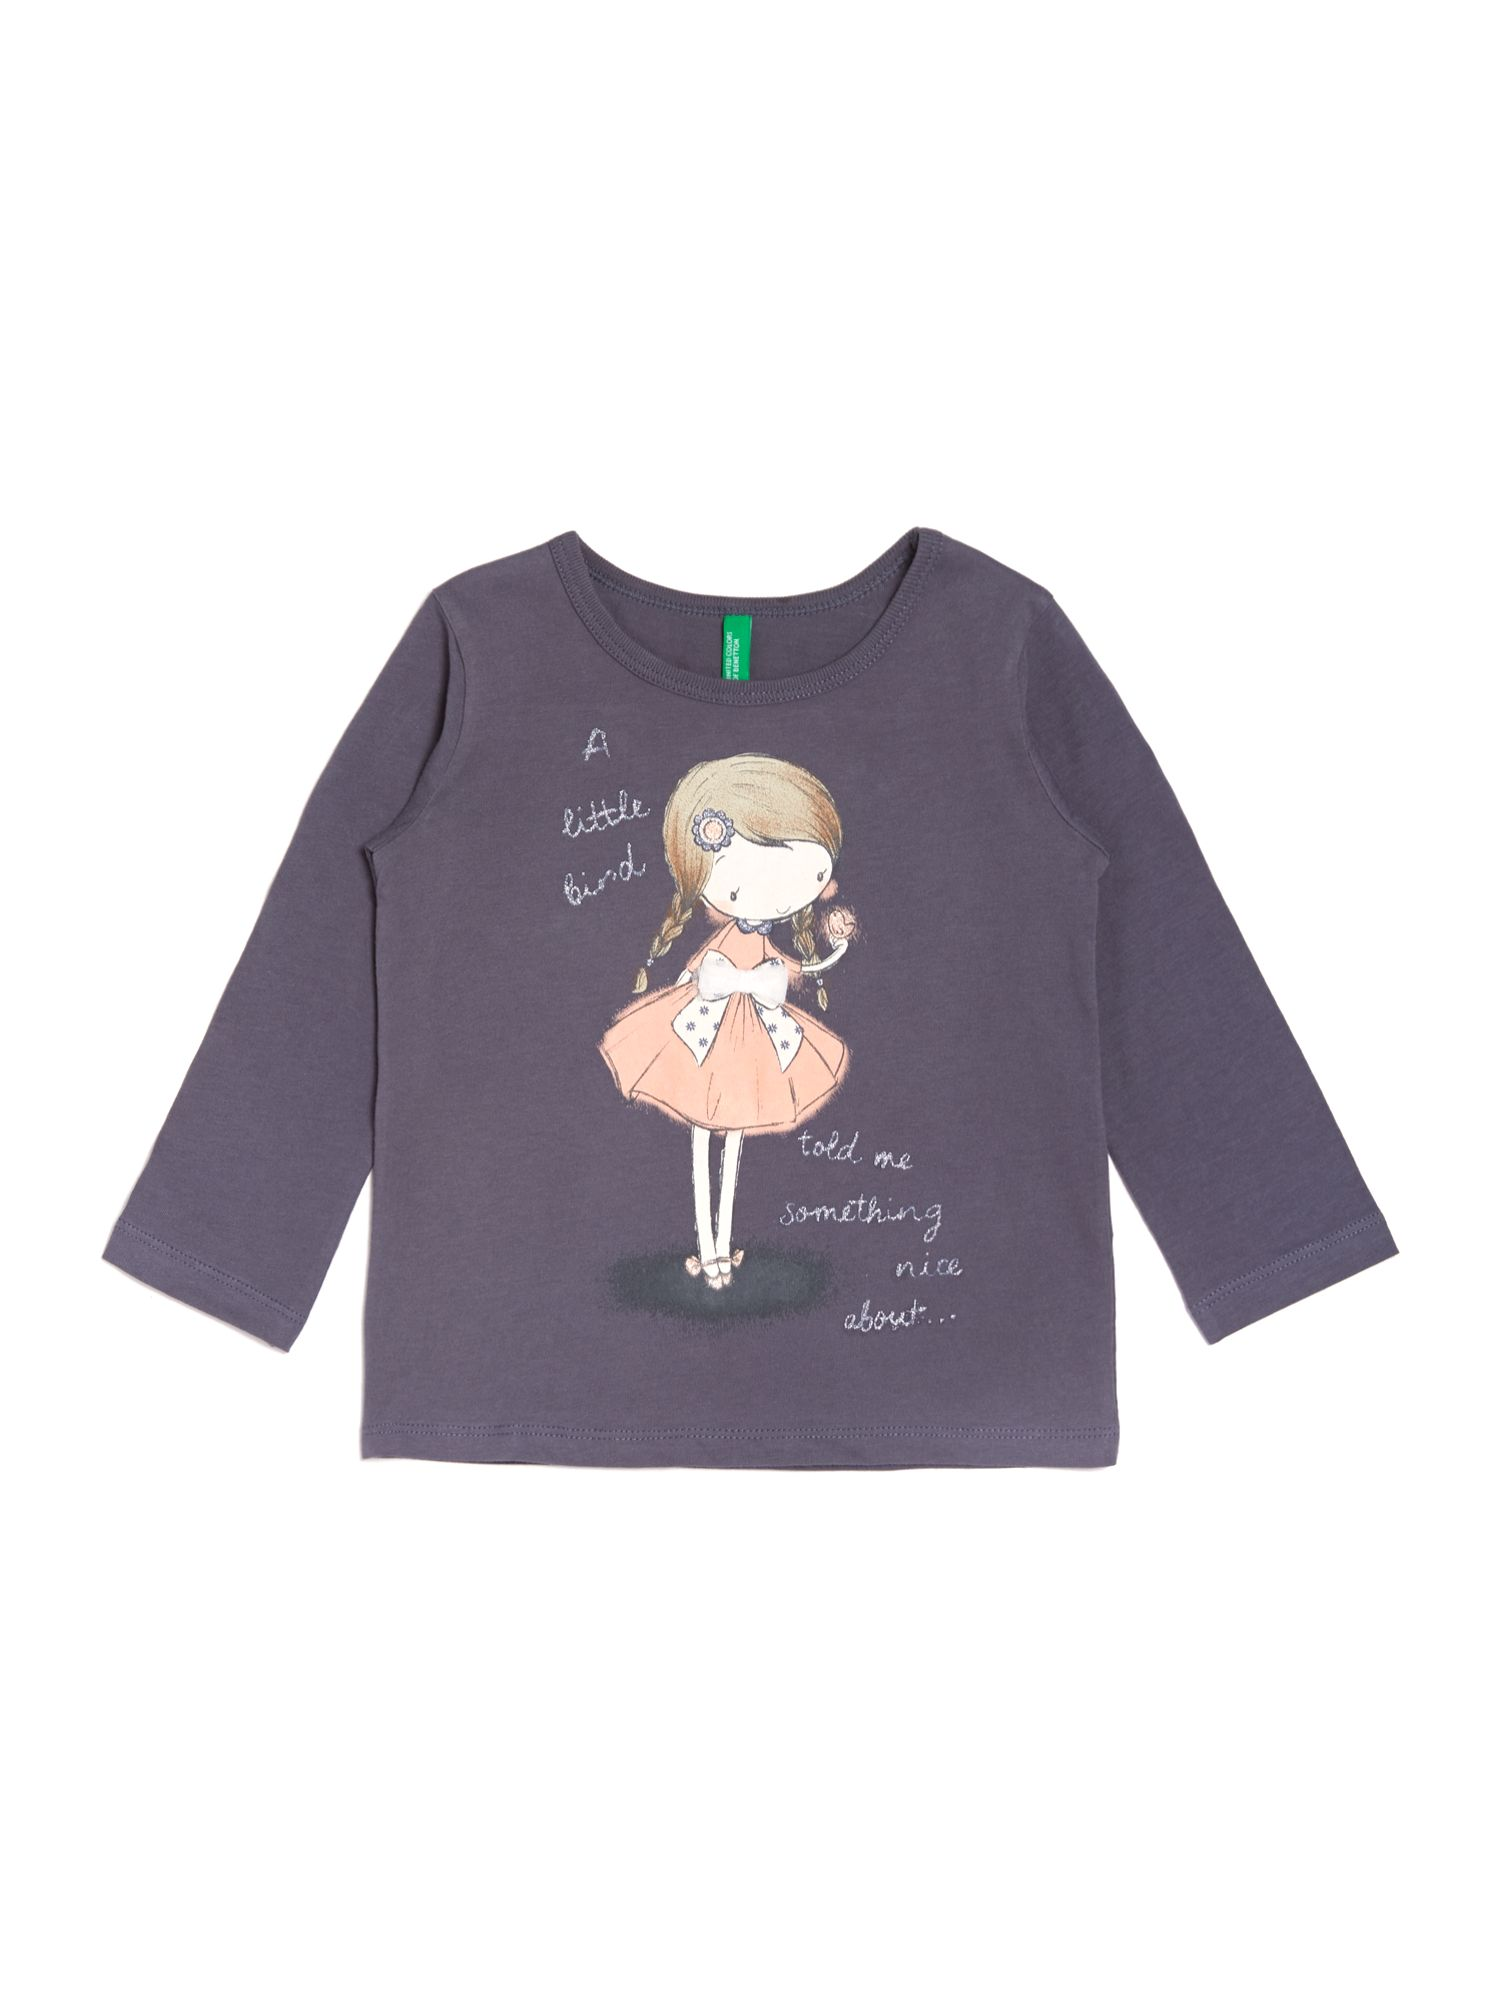 Girls glitter brid graphic top